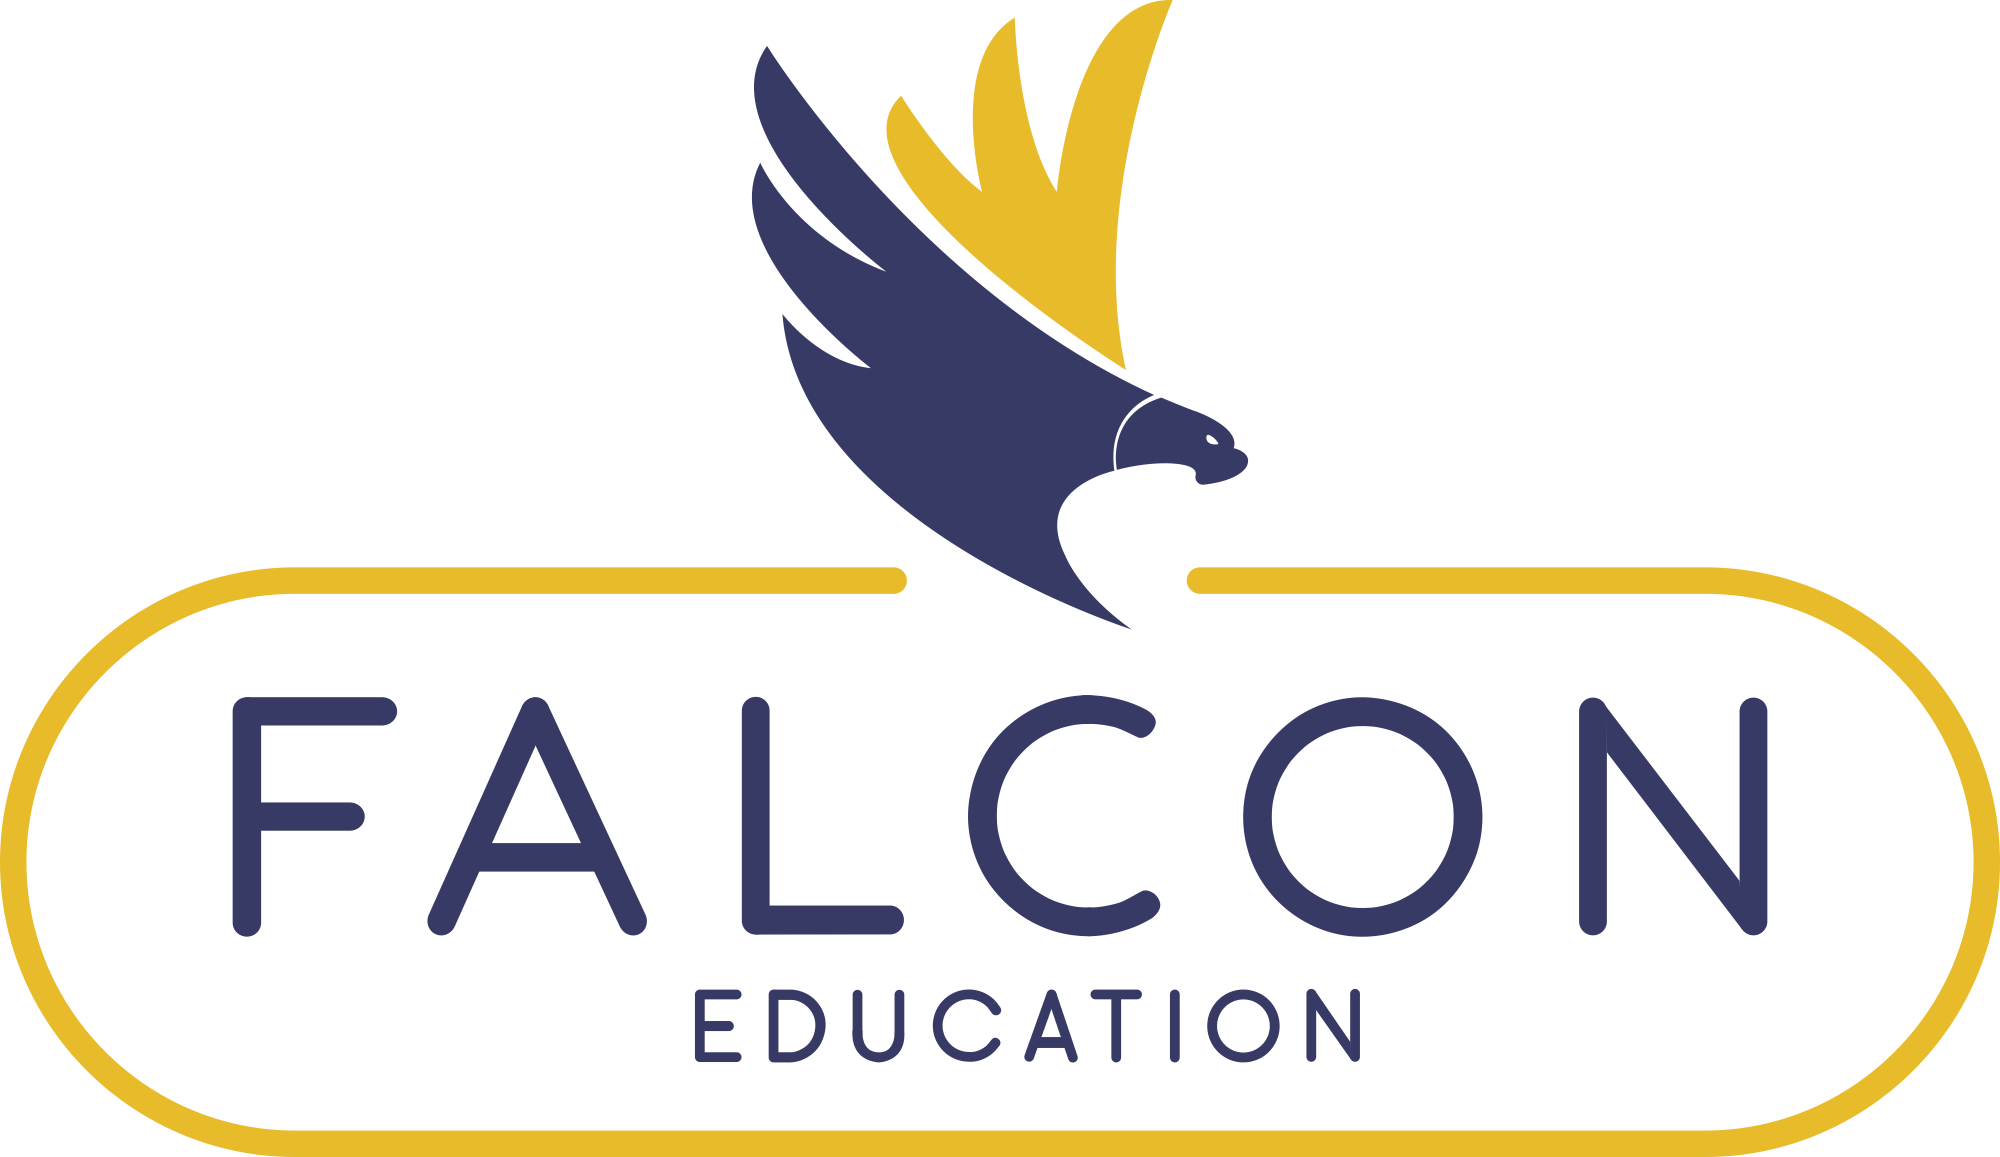 Falcon Education